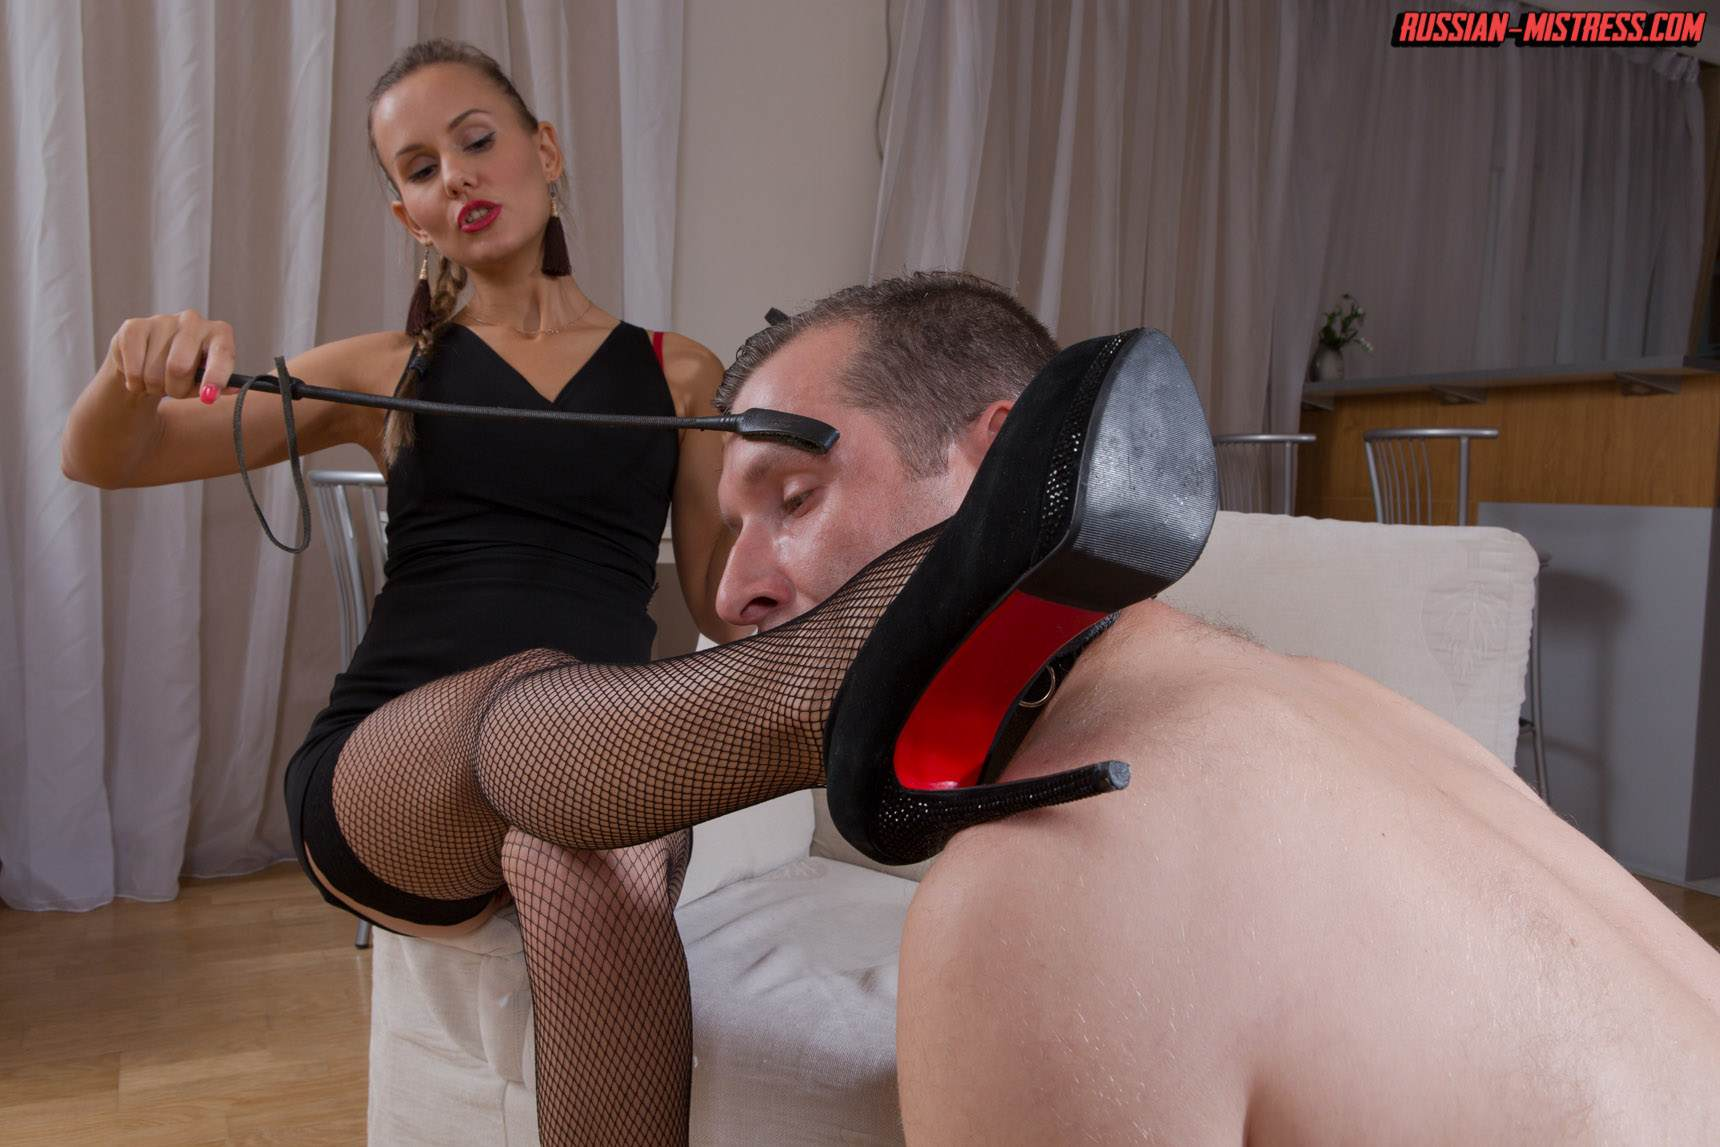 Picture #6 of Mistress is keeping slave motivated for legs worship with harsh whip lashes and then rewards him with deep anal strap-on penetration